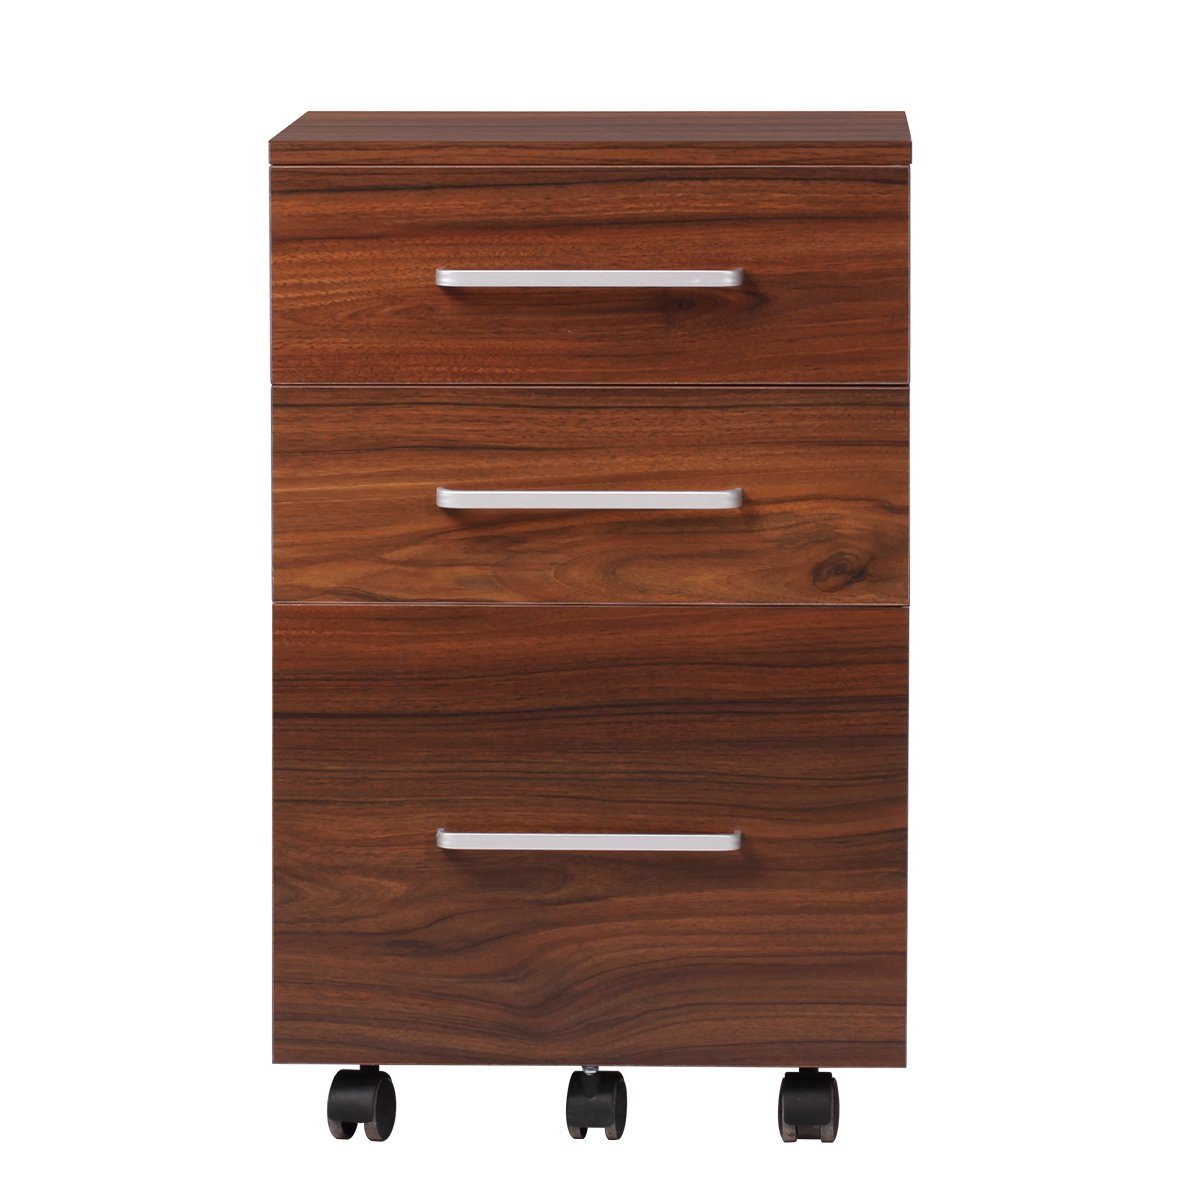 DEVAISE 3 Drawer Lateral Wood Mobile Filing Cabinet, Letter size, Walnut